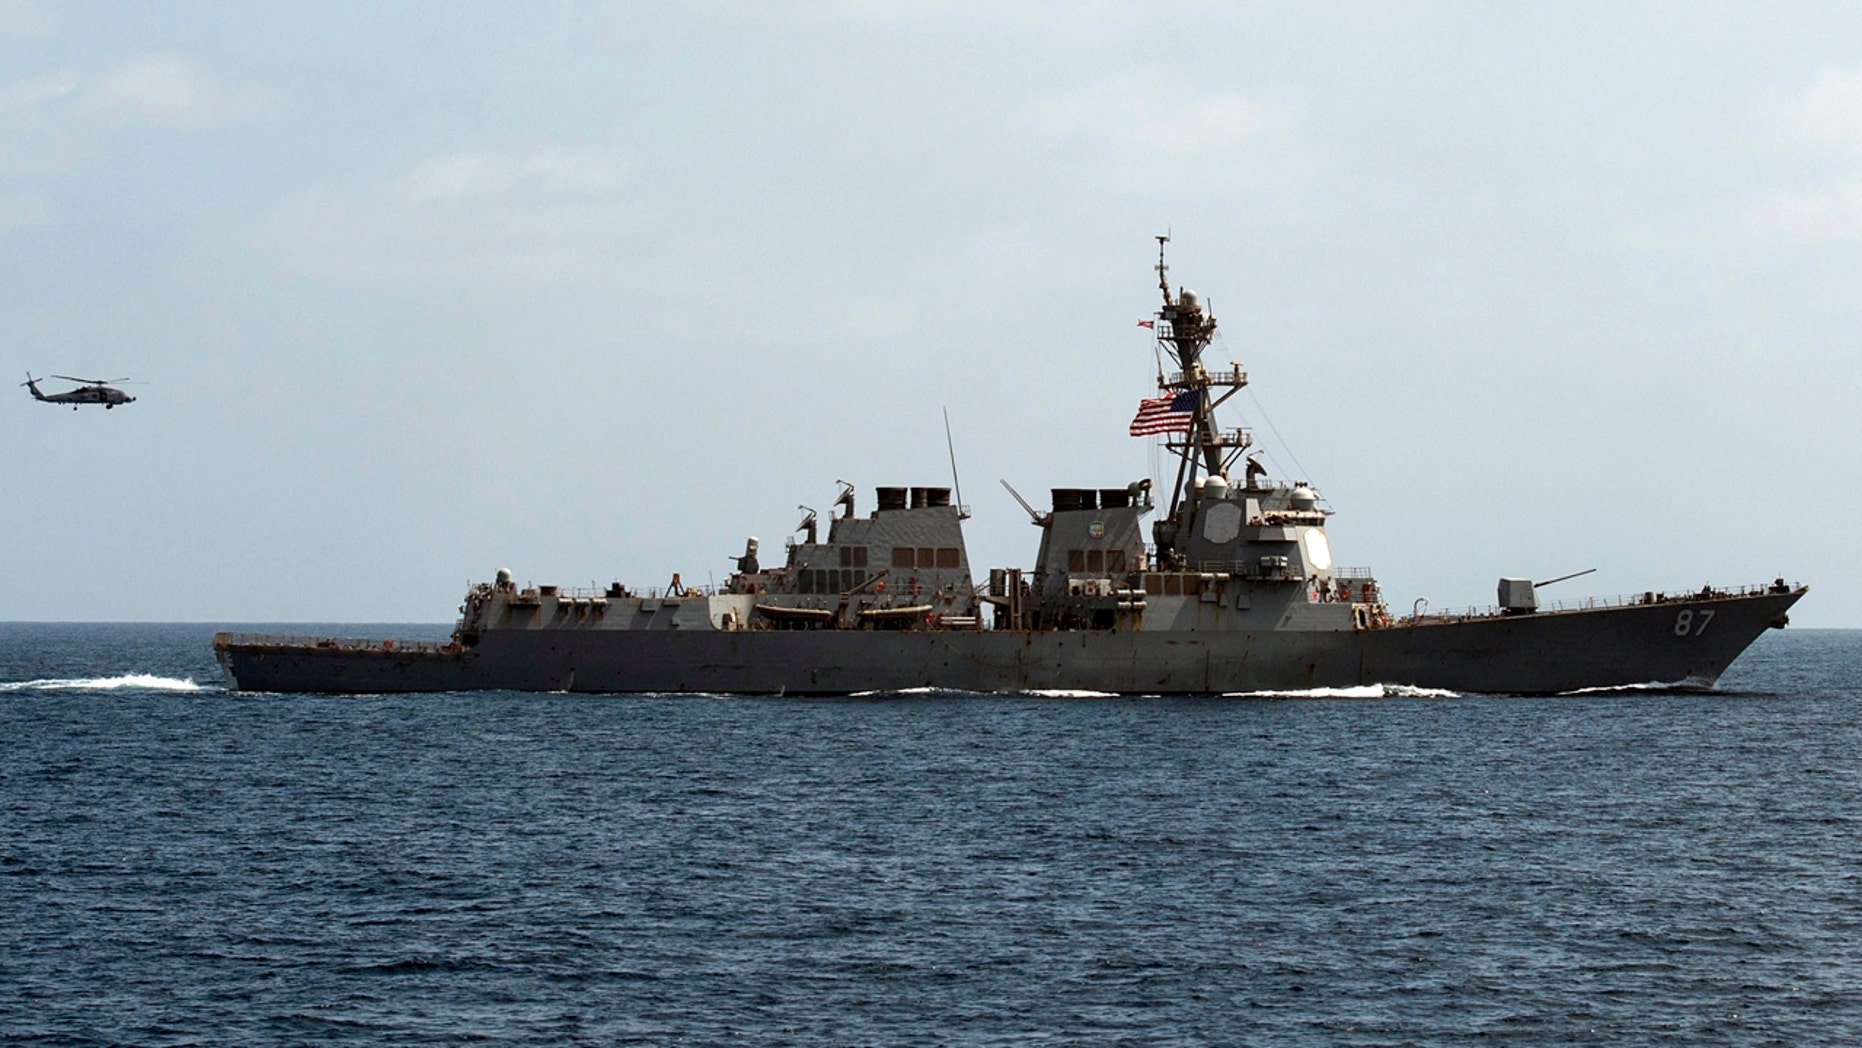 Sept. 10, 2016: The USS Mason conducts maneuvers as part of a exercise in the Gulf of Oman